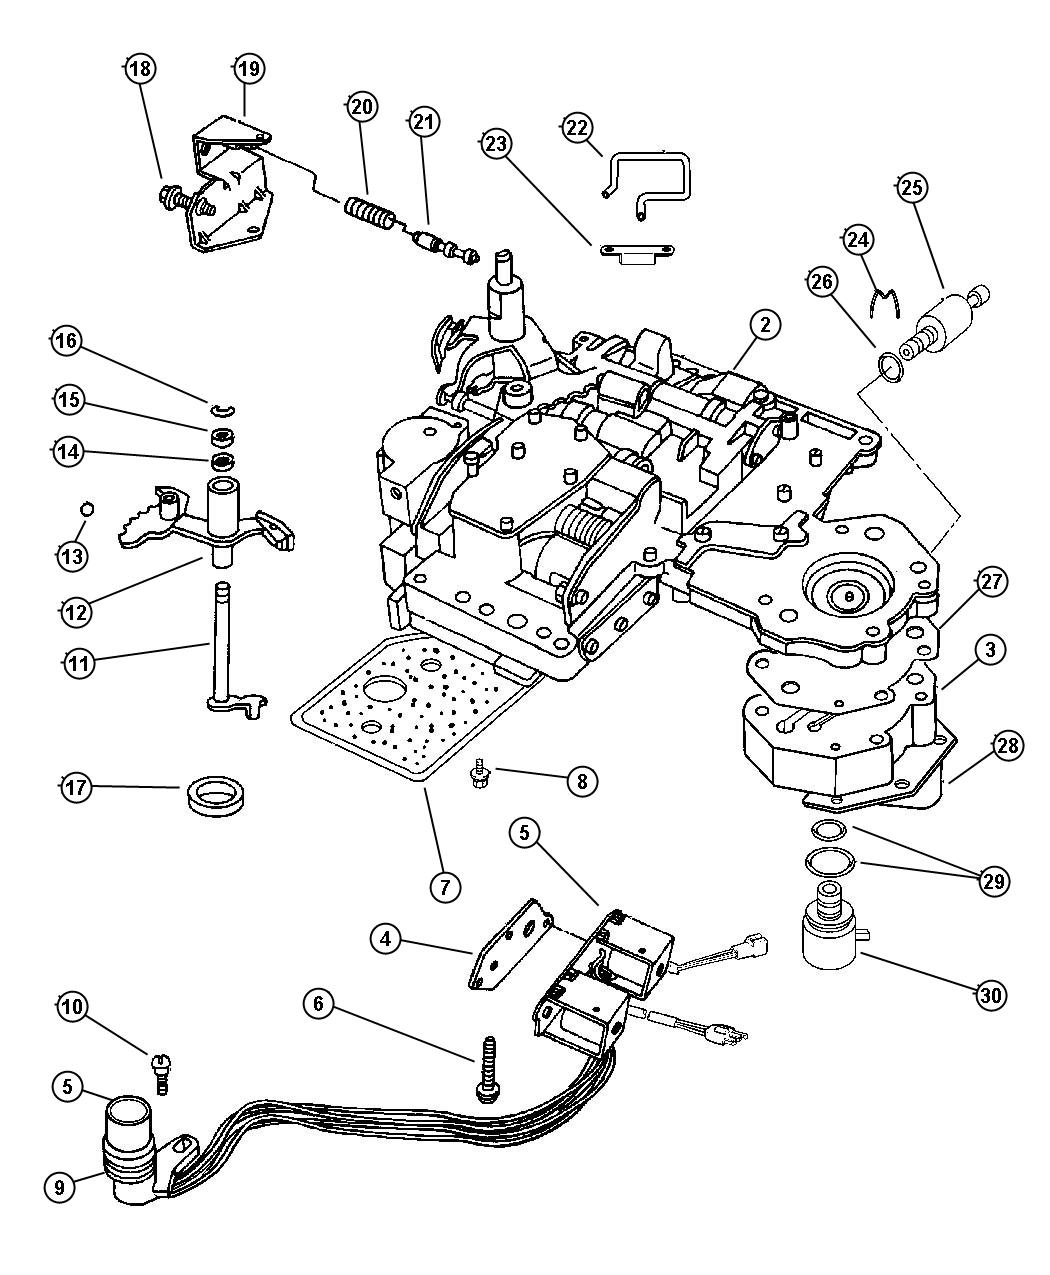 Dodge Ram Transmission Diagram Pictures To Pin